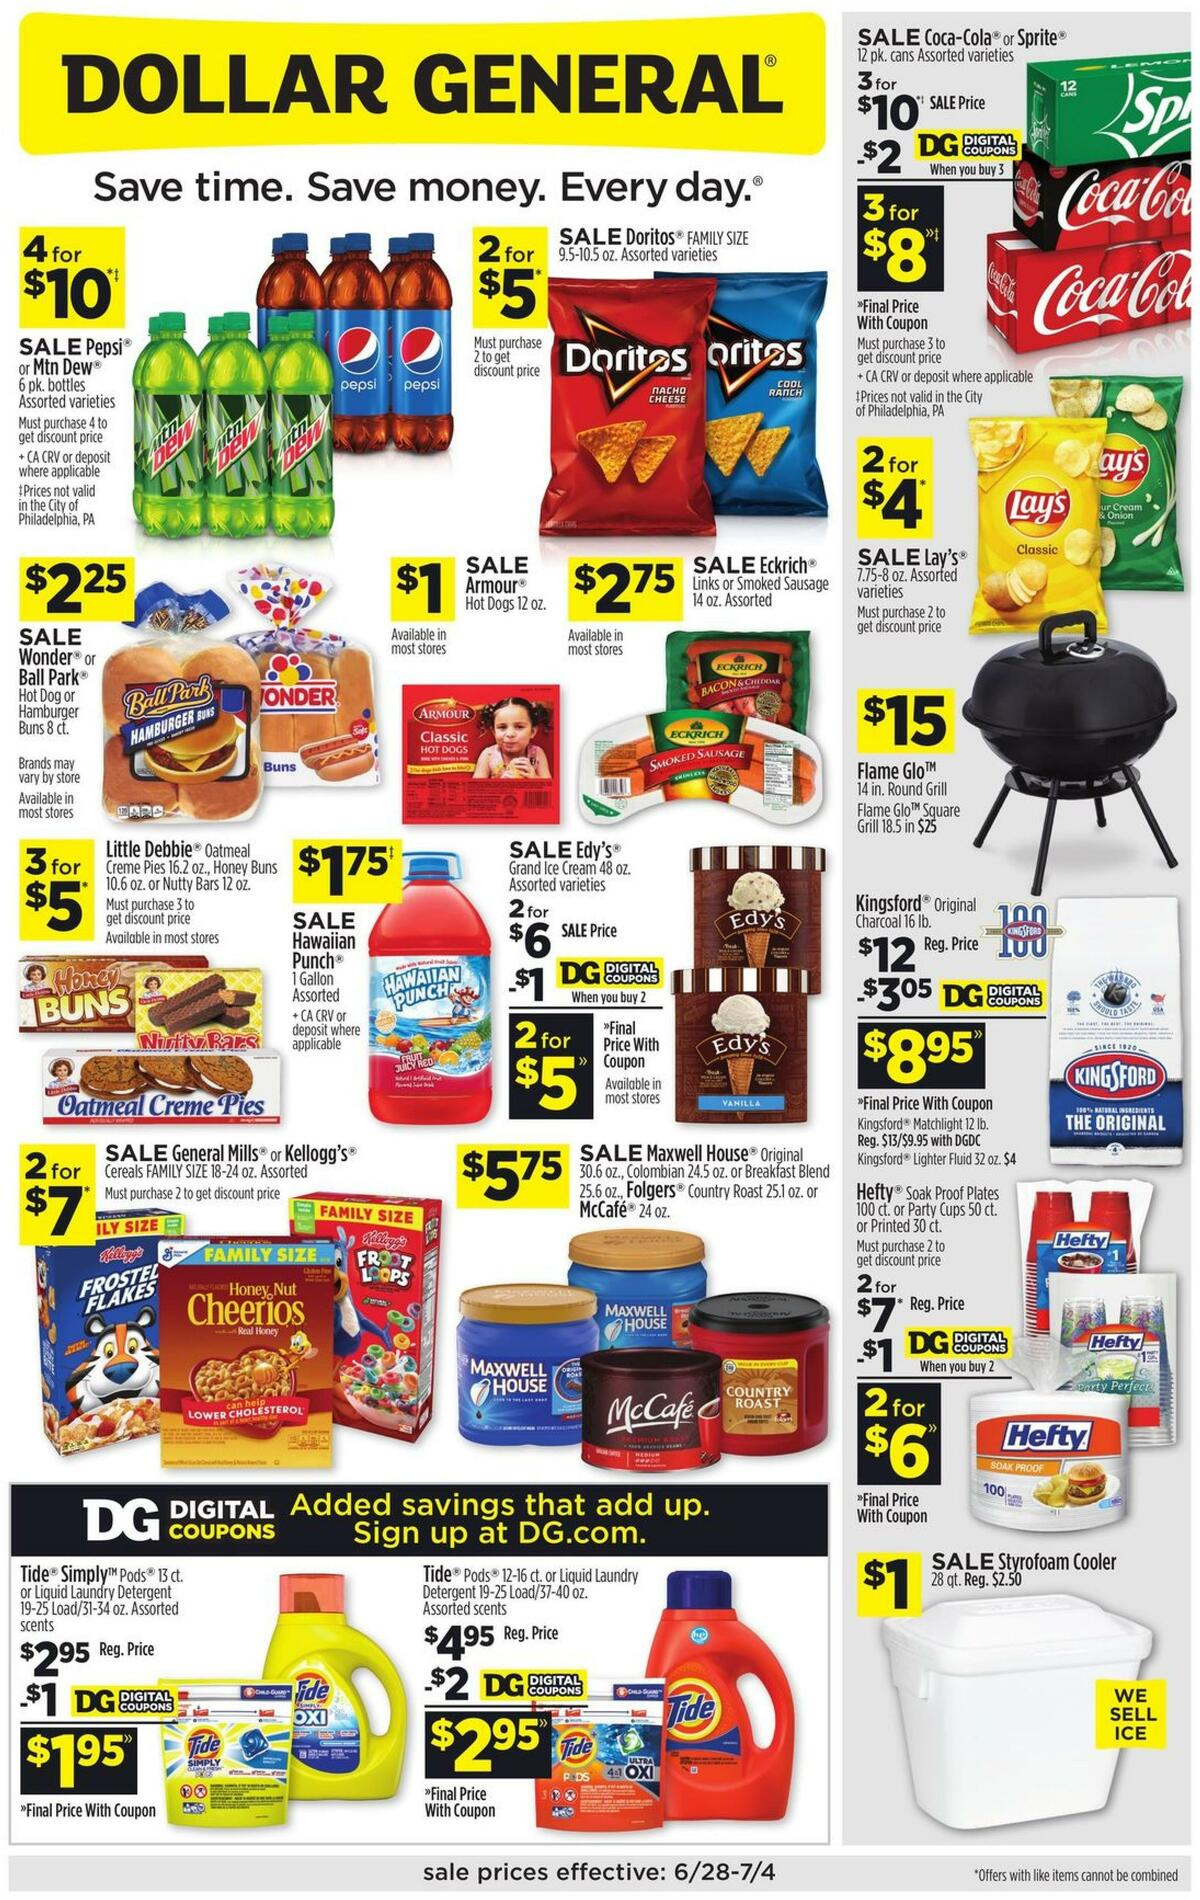 Dollar General Weekly Ad from June 28